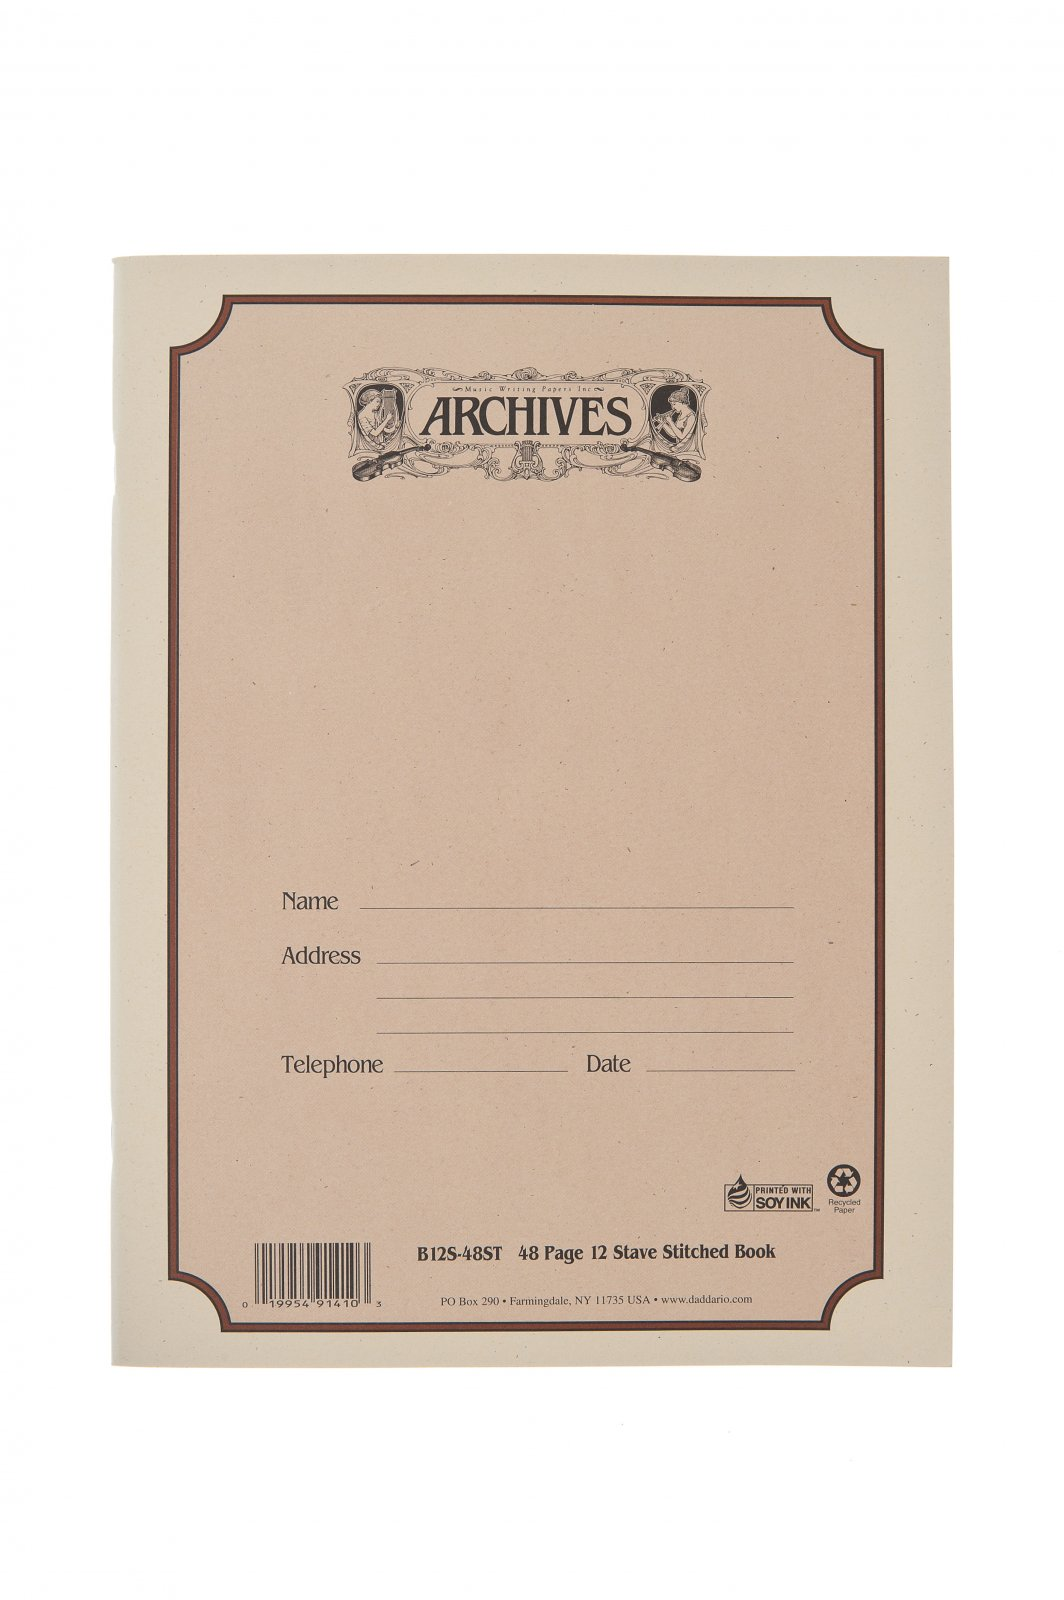 Archives Standard Bound Manuscript Paper Book, 12 Stave, 48 Pages